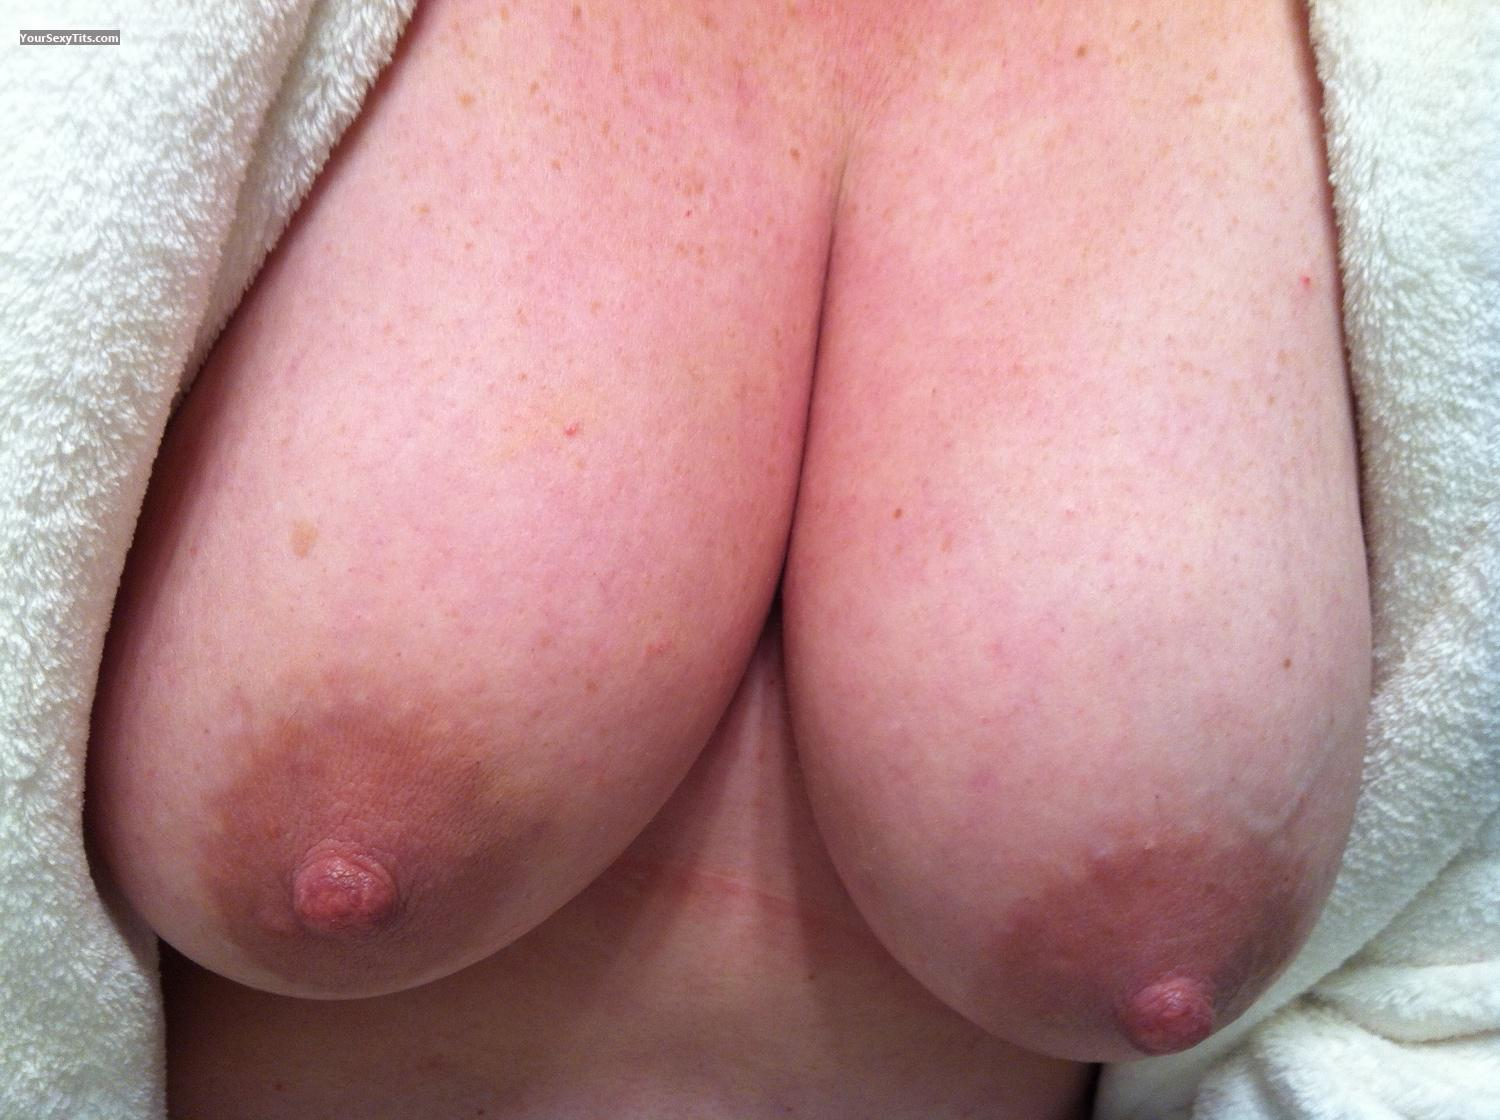 Tit Flash: Medium Tits By IPhone - Franksgirl from United States